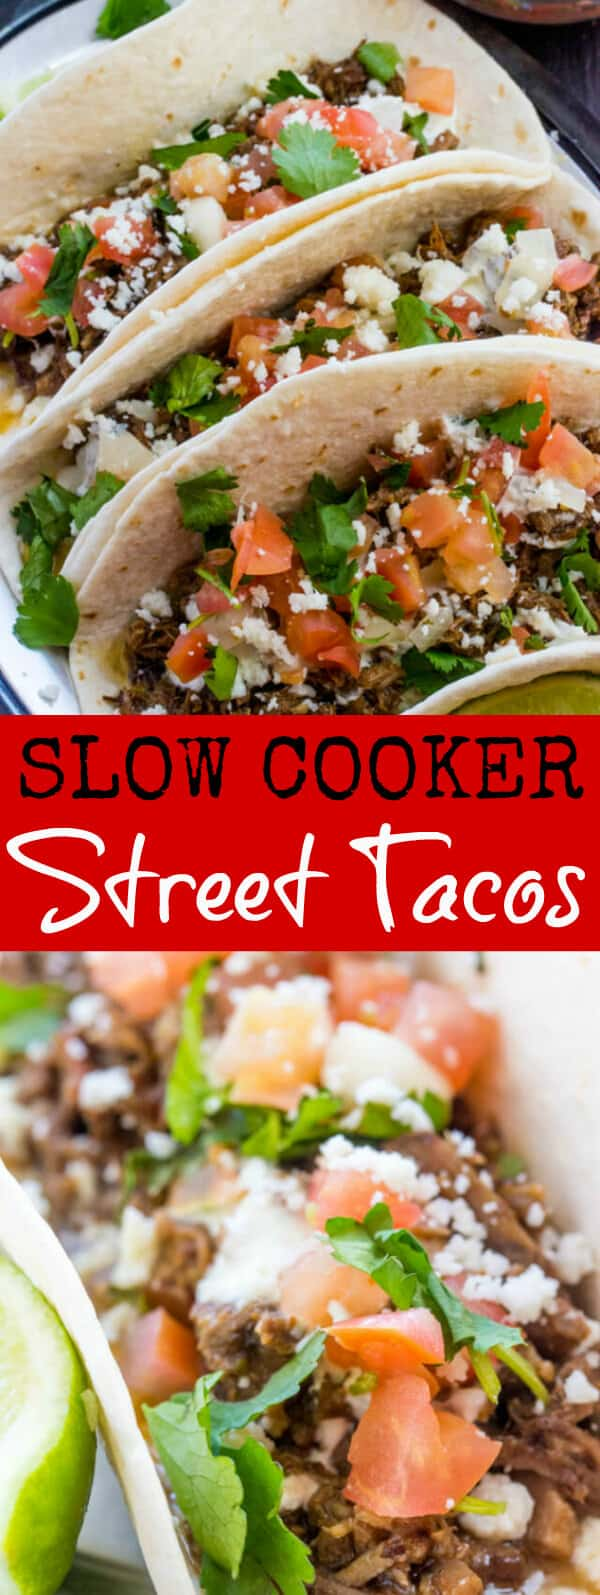 Moist, delicious and absolutely addicting these Slow Cooker Street Tacos are our go to meal for taco Tuesday!